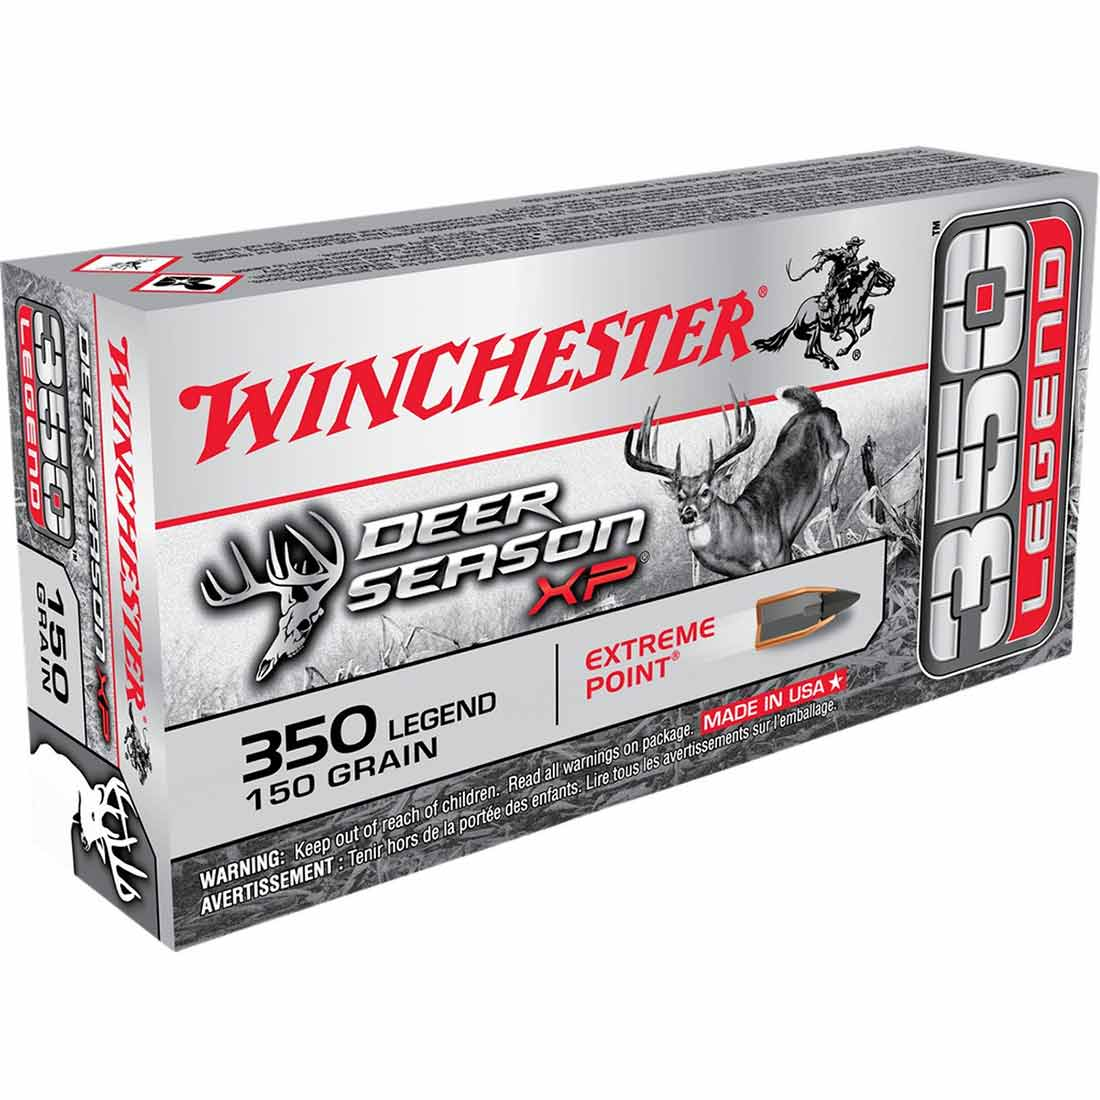 Winchester Deer Season XP 350 Legend 150 Gr, Box of 20_1.jpg